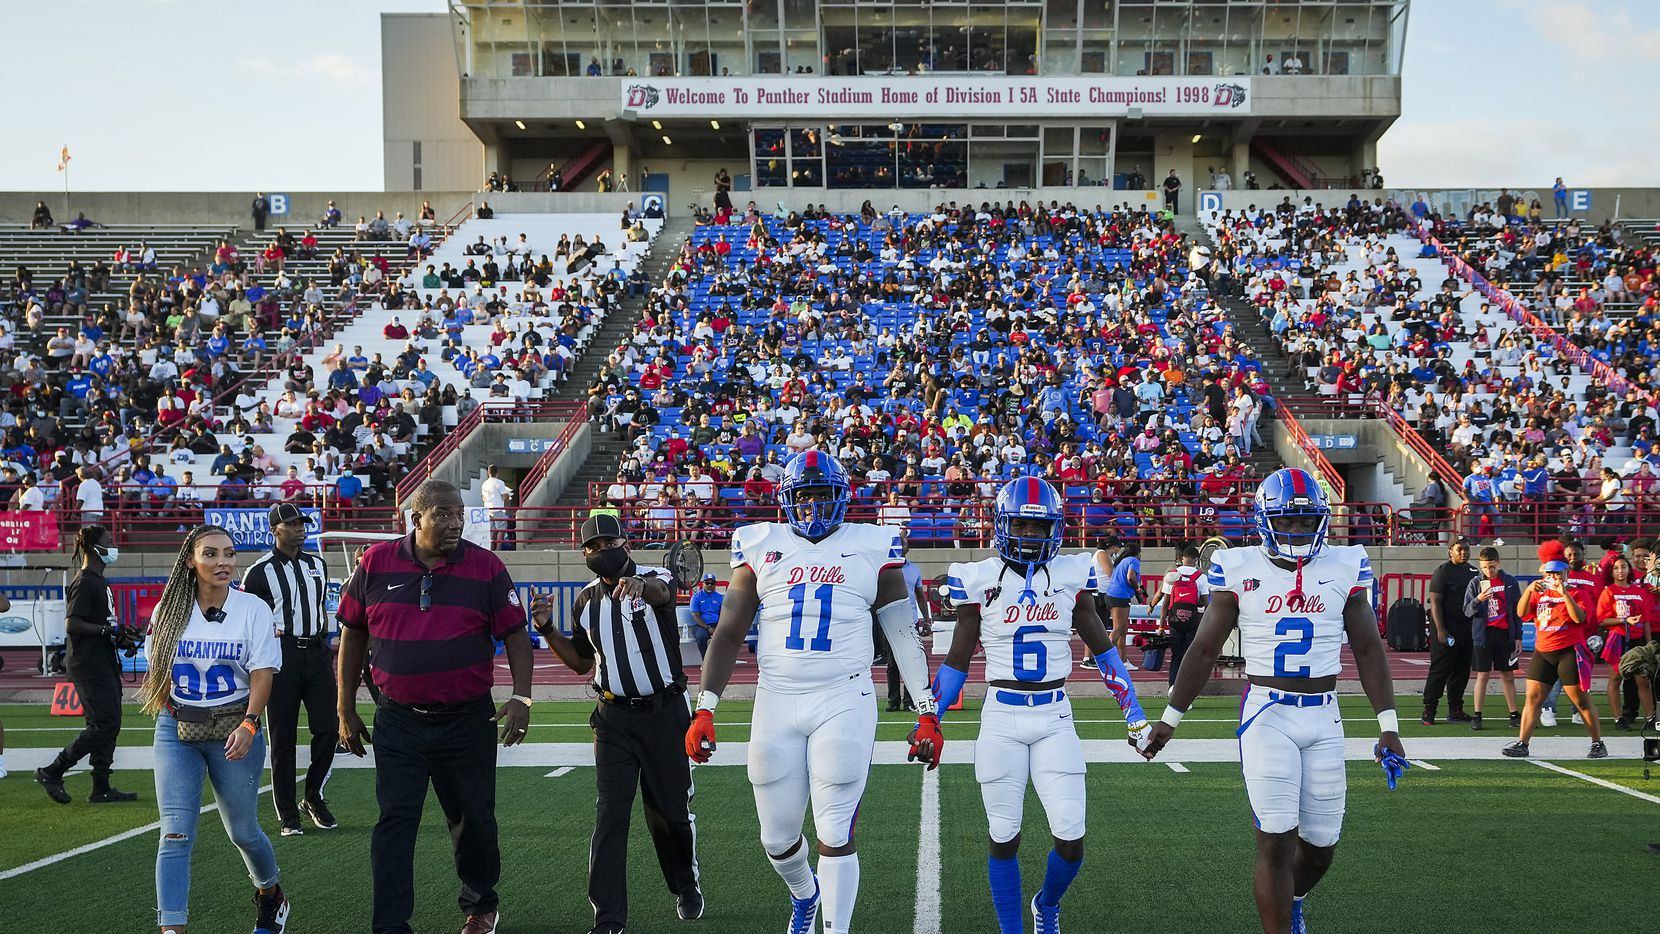 Duncanville's Quincy Wright (11), Da'Myrion Colemann (6) and linebacker Jordan Crook (2) walk out for the opening coin toss with State Senator Royce West before a high school football game against Mater Dei on Friday, Aug. 27, 2021, in Duncanville. (Smiley N. Pool/The Dallas Morning News)